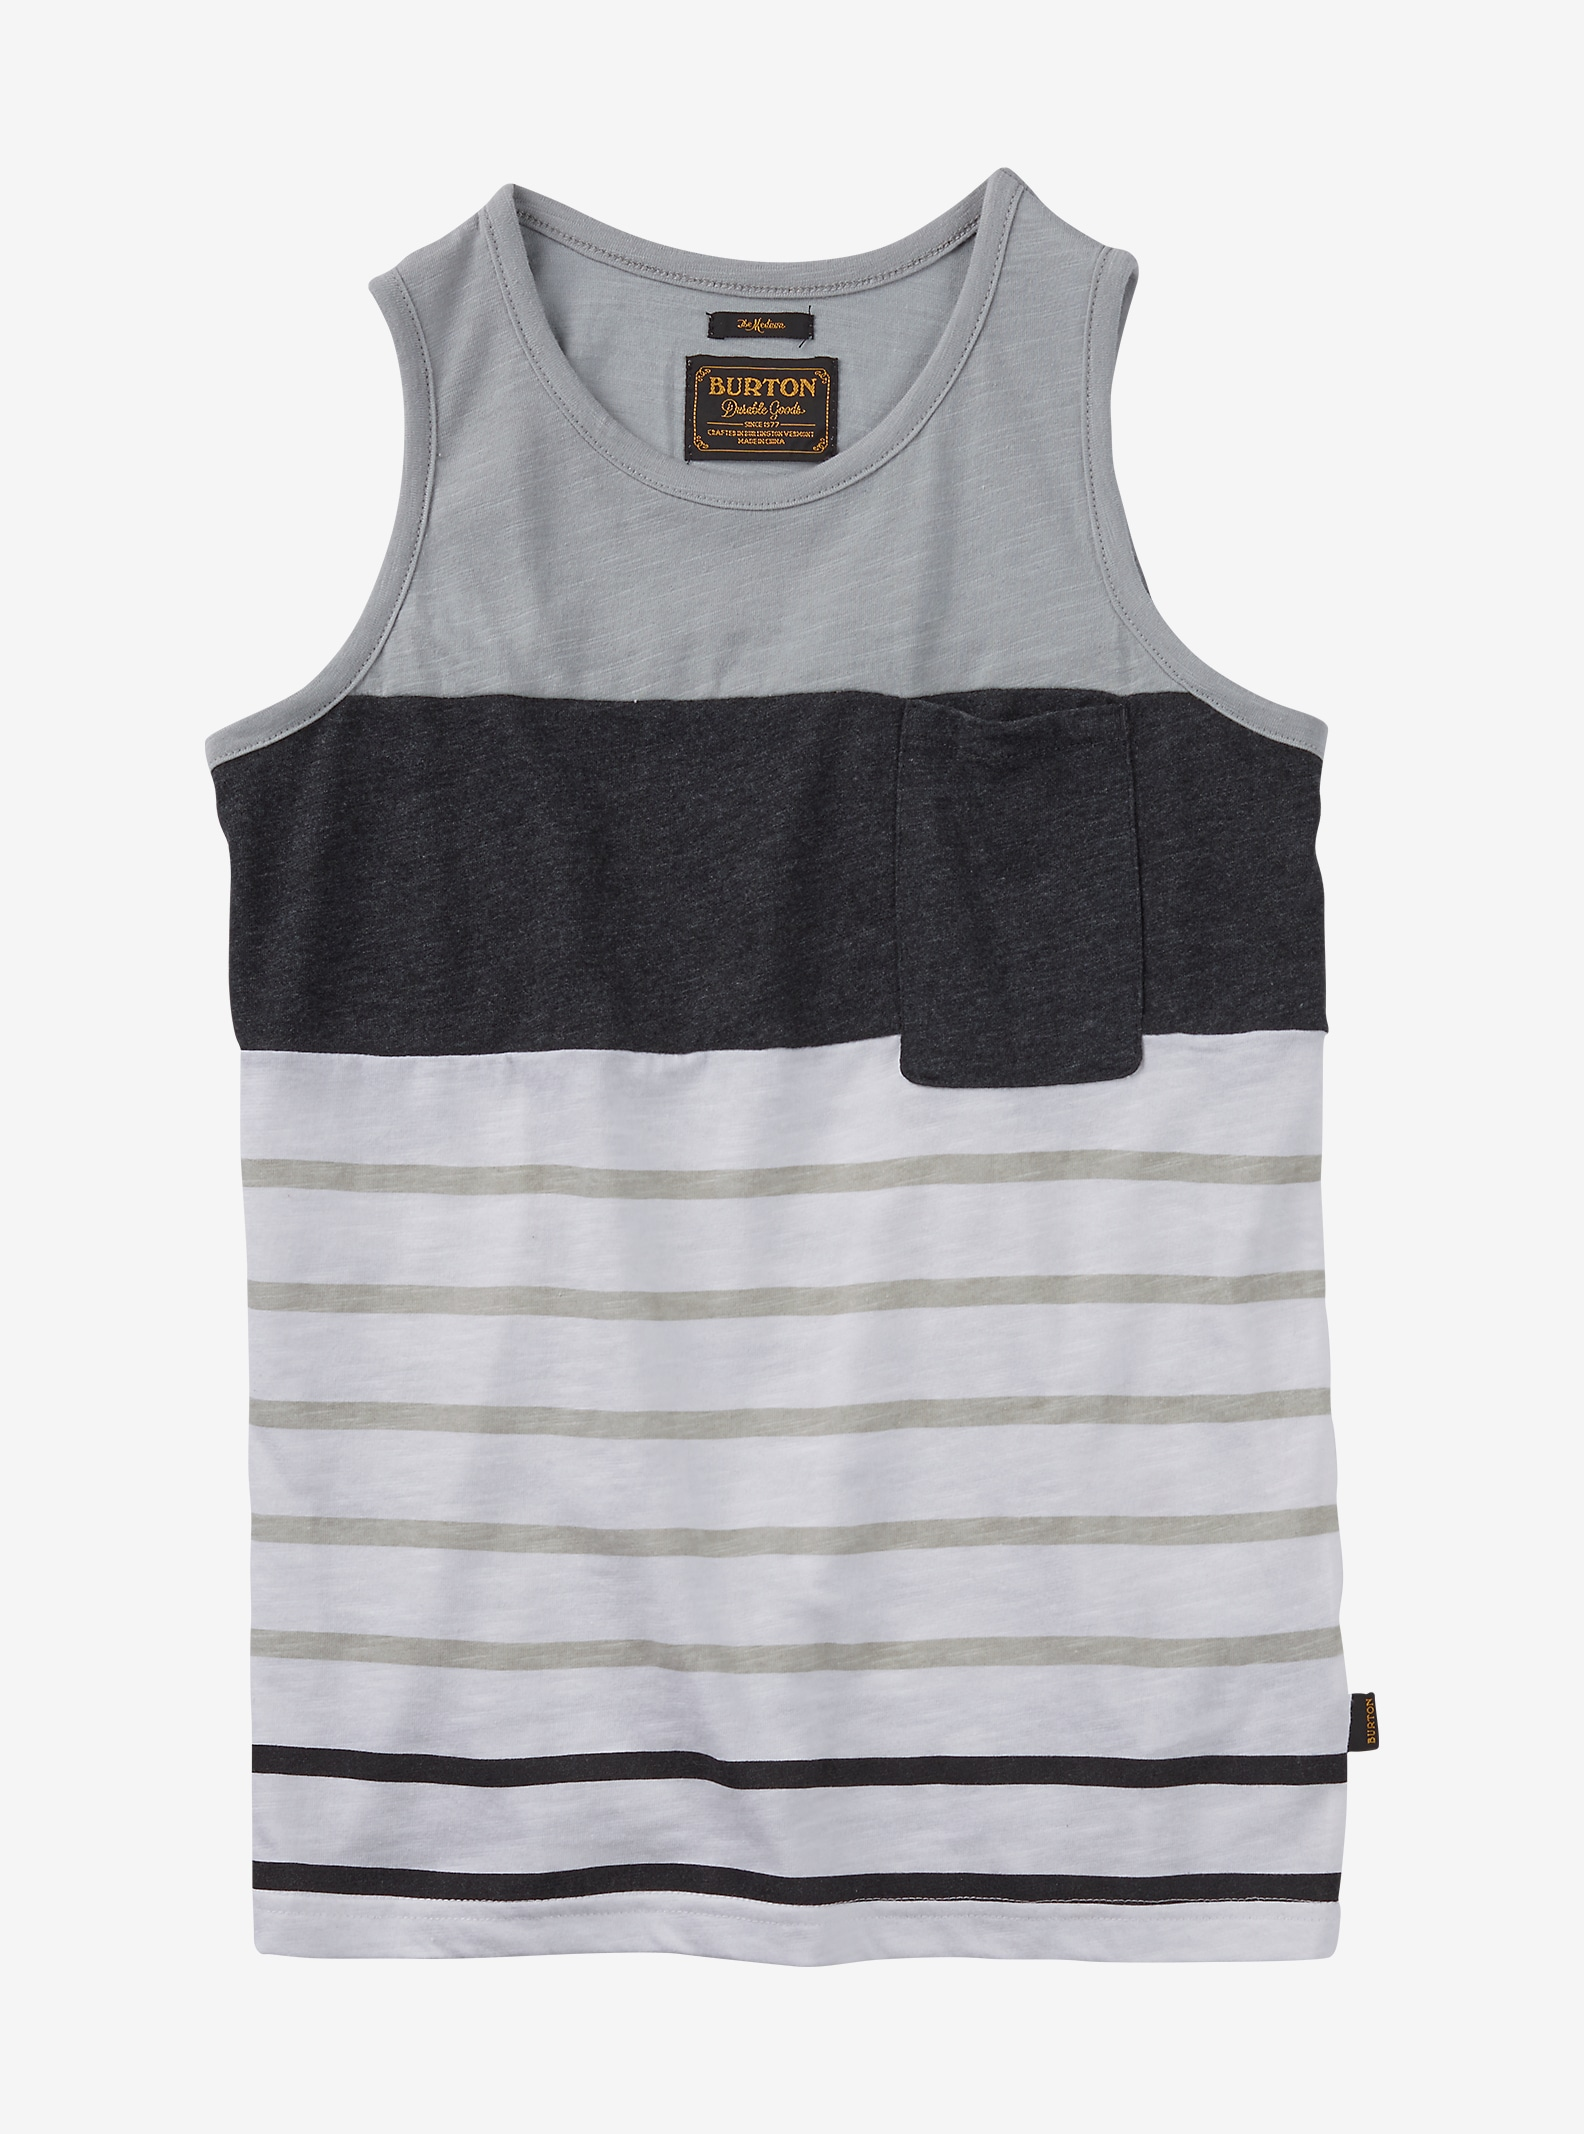 Burton Boys' Brandbury Tank shown in High Rise Lplnd Stripe